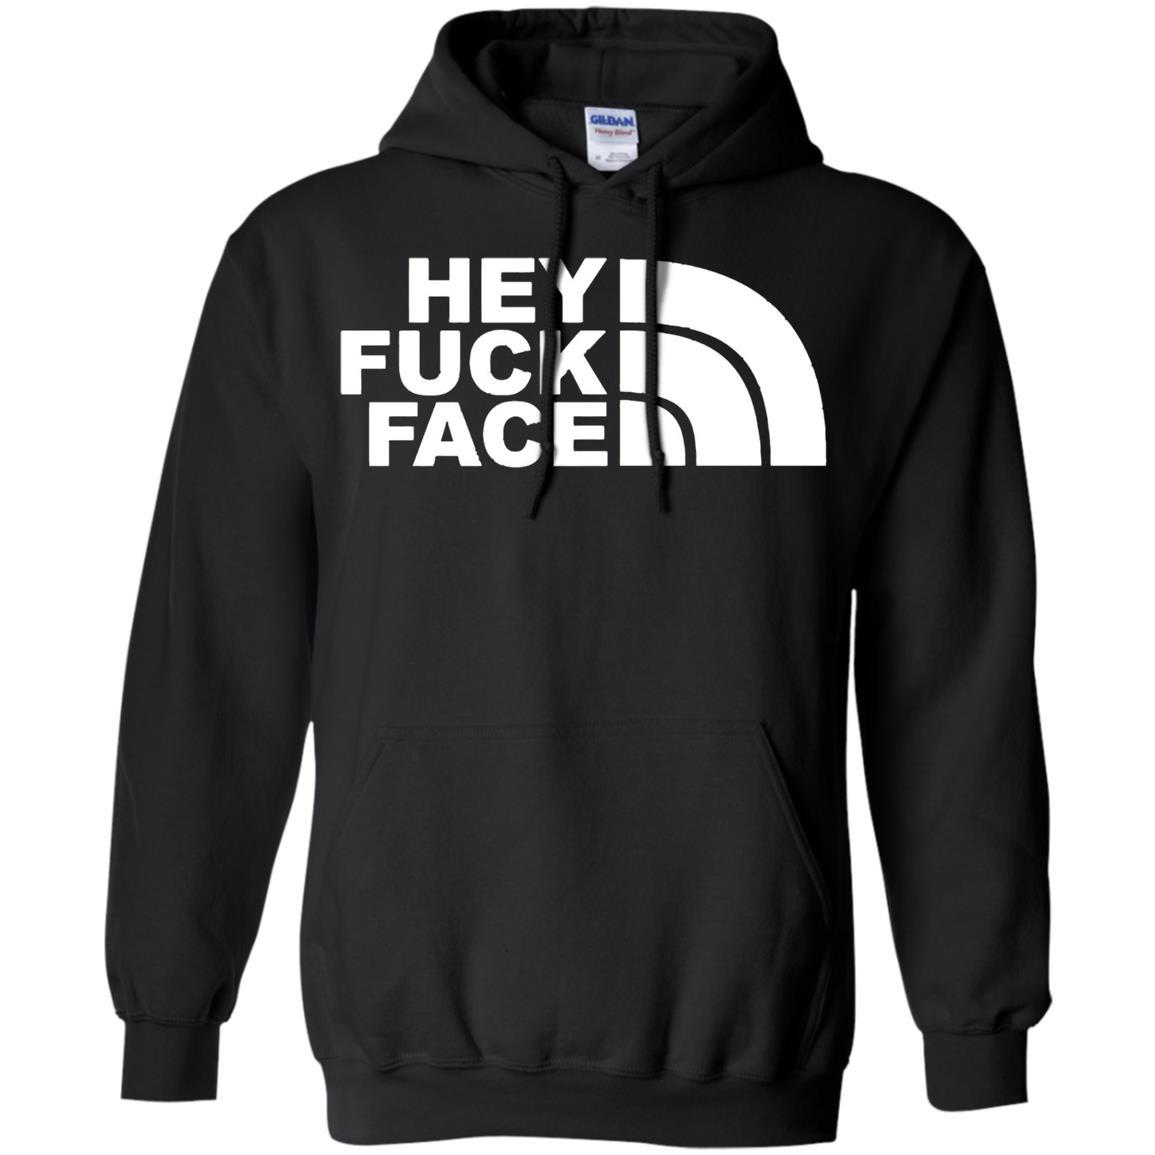 HEY FUCK FACE - Pullover Hoodie Black / 5XL